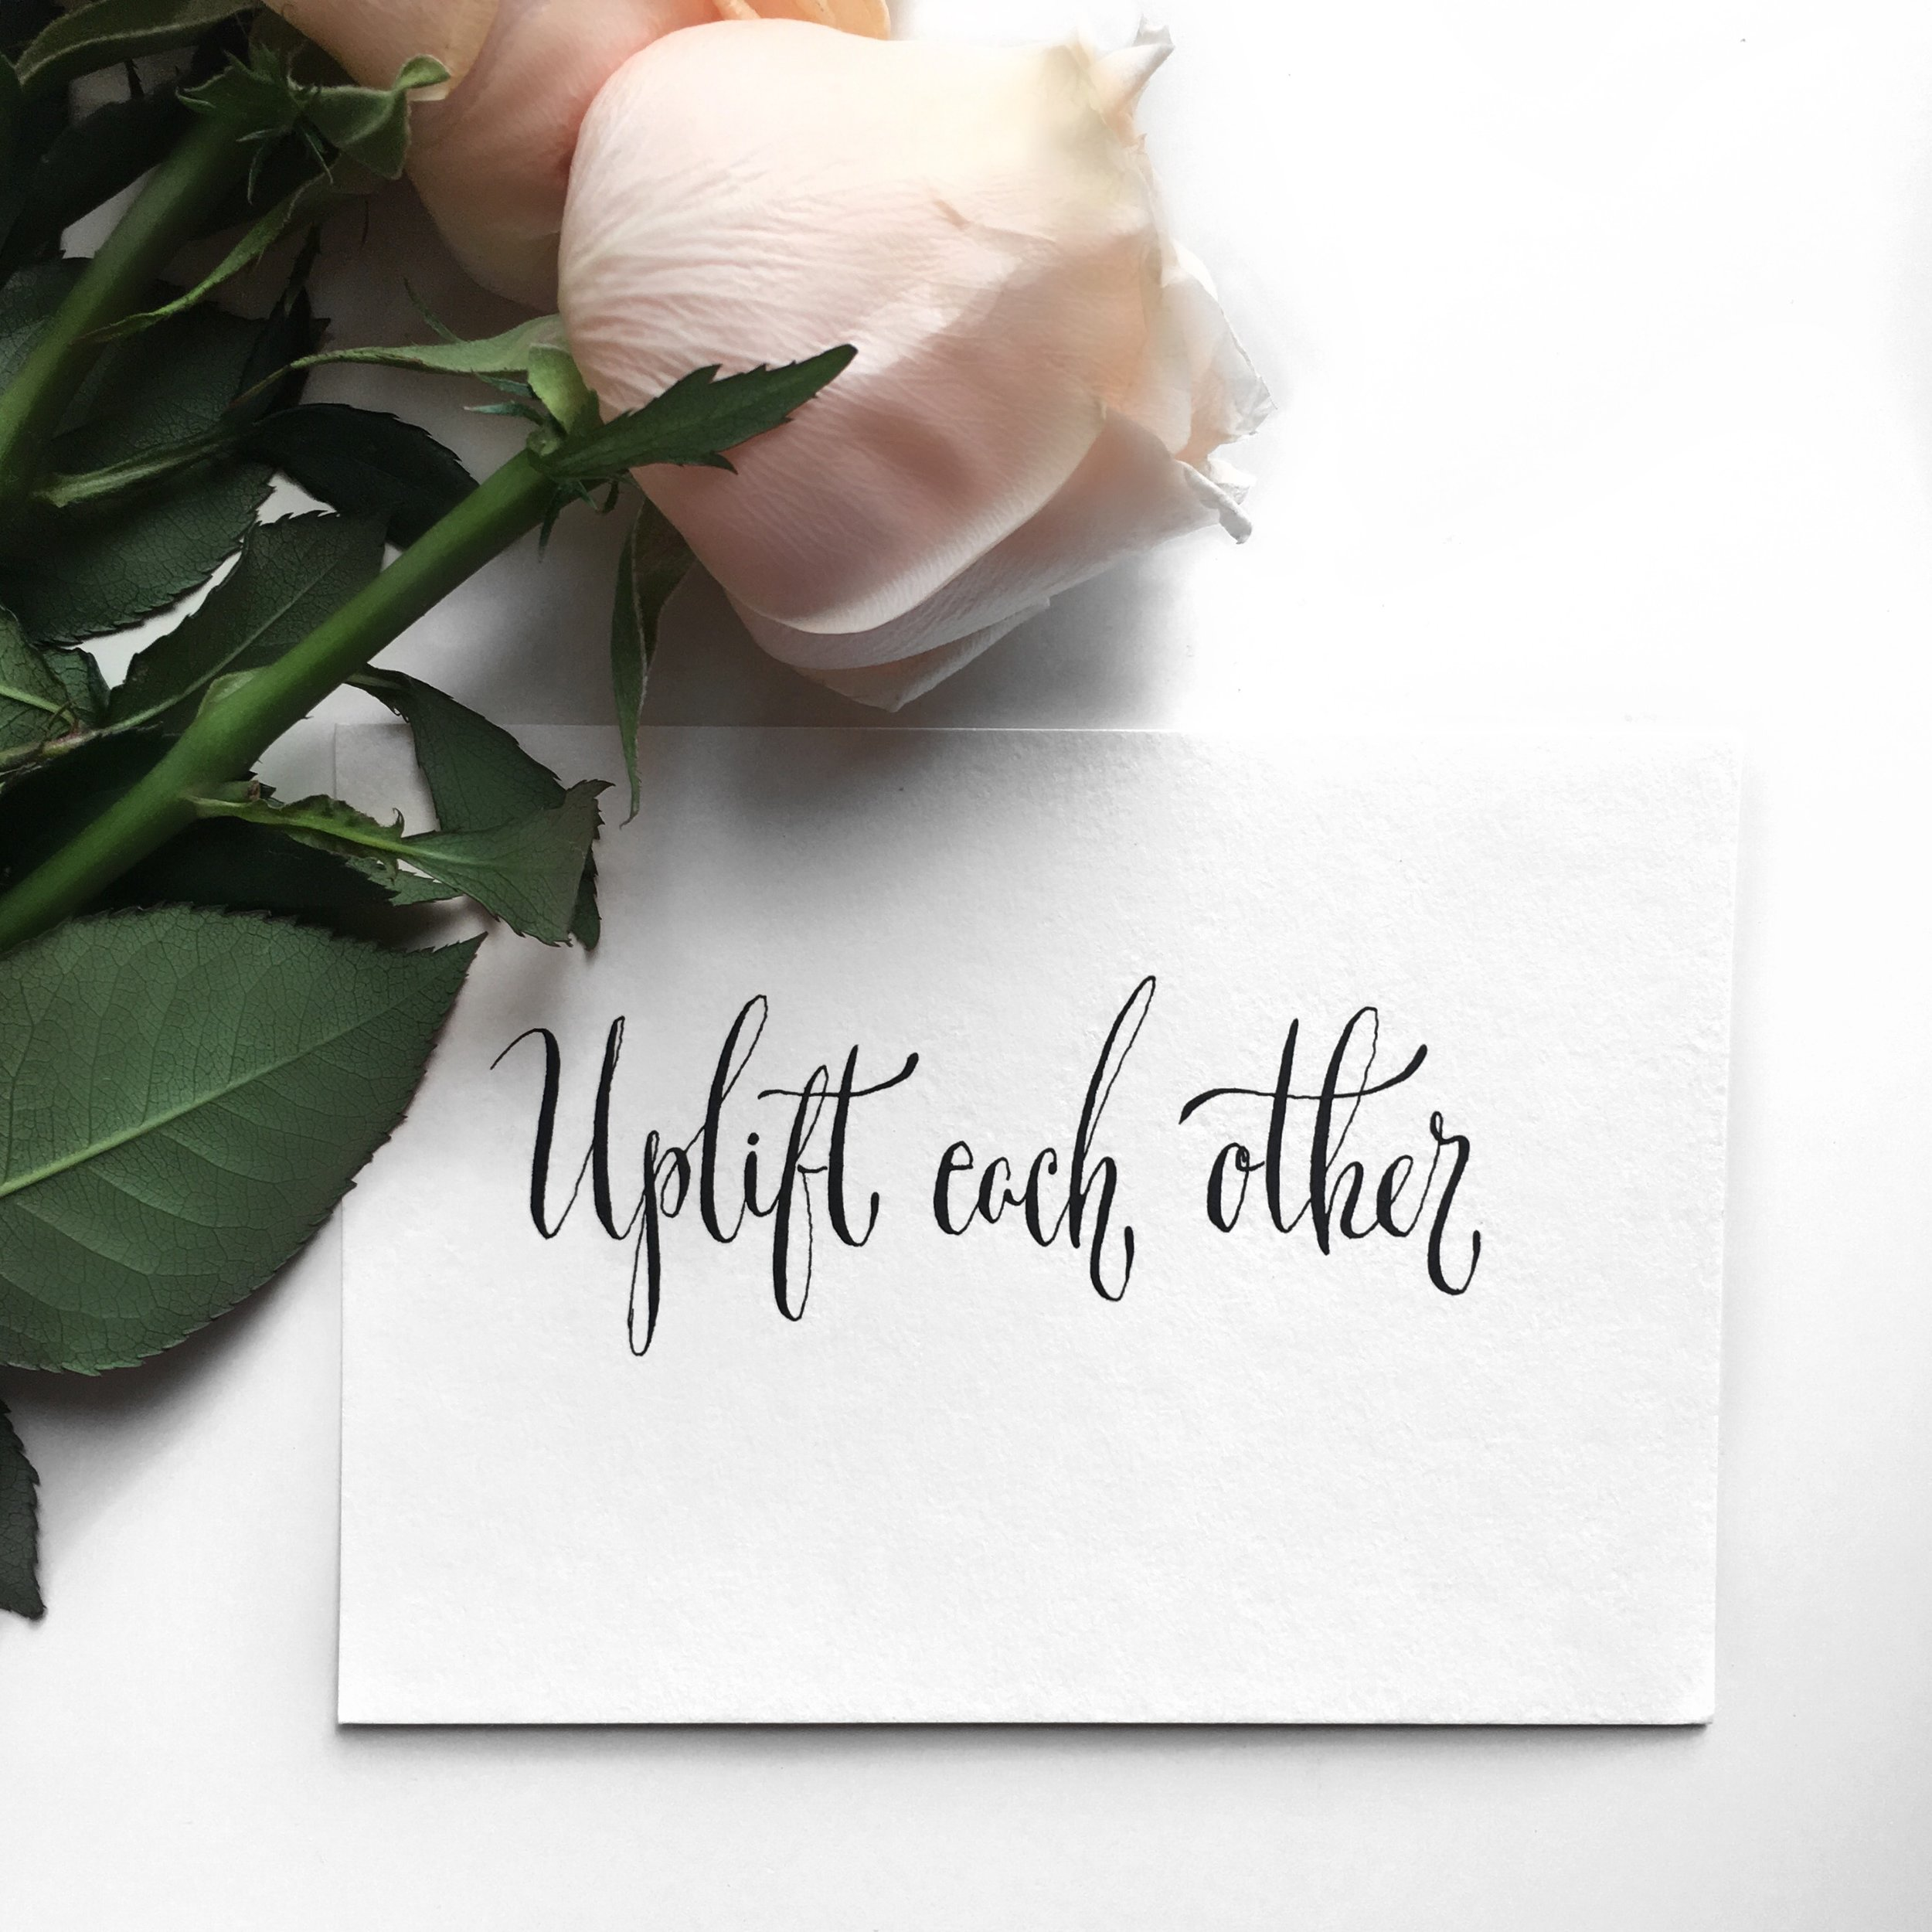 Uplift each other + roses